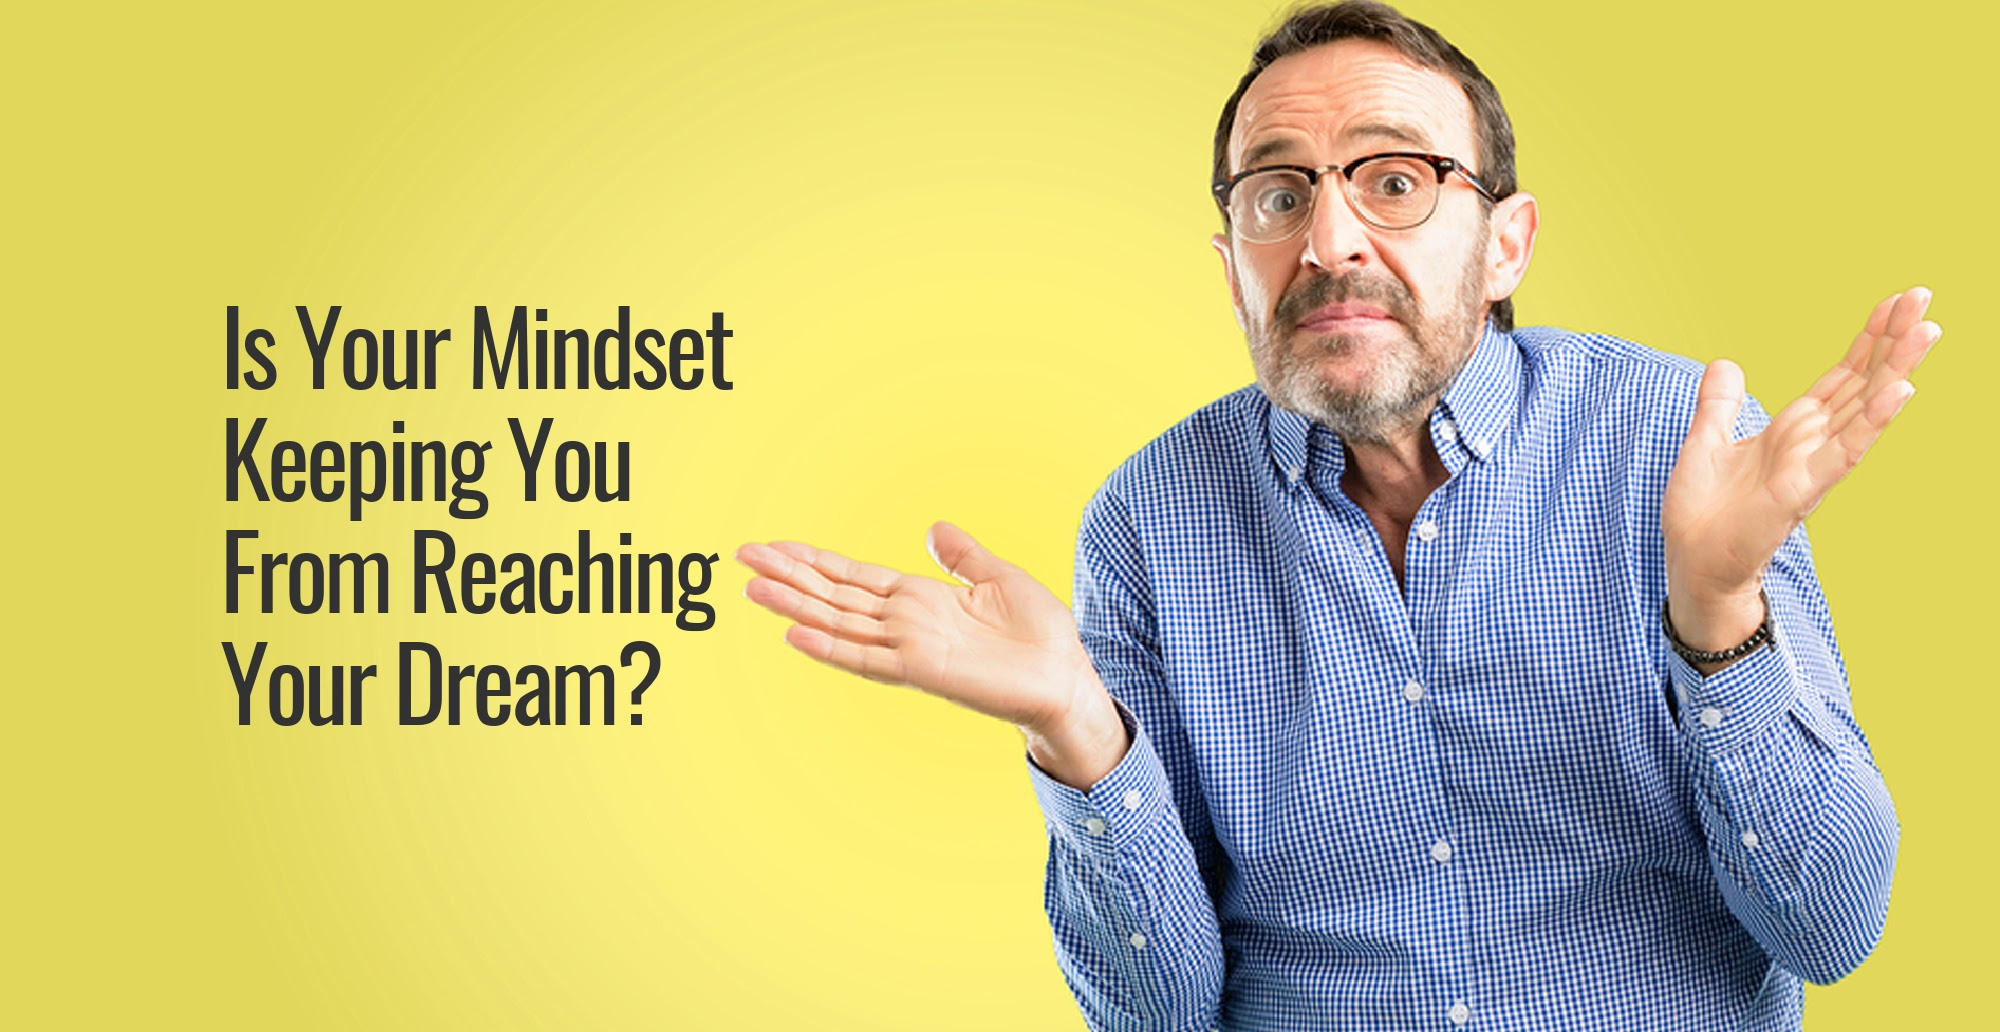 A man wearing glasses posing for the camera next to the words Is Your Mindset Keeping You From Reaching Your Dream?